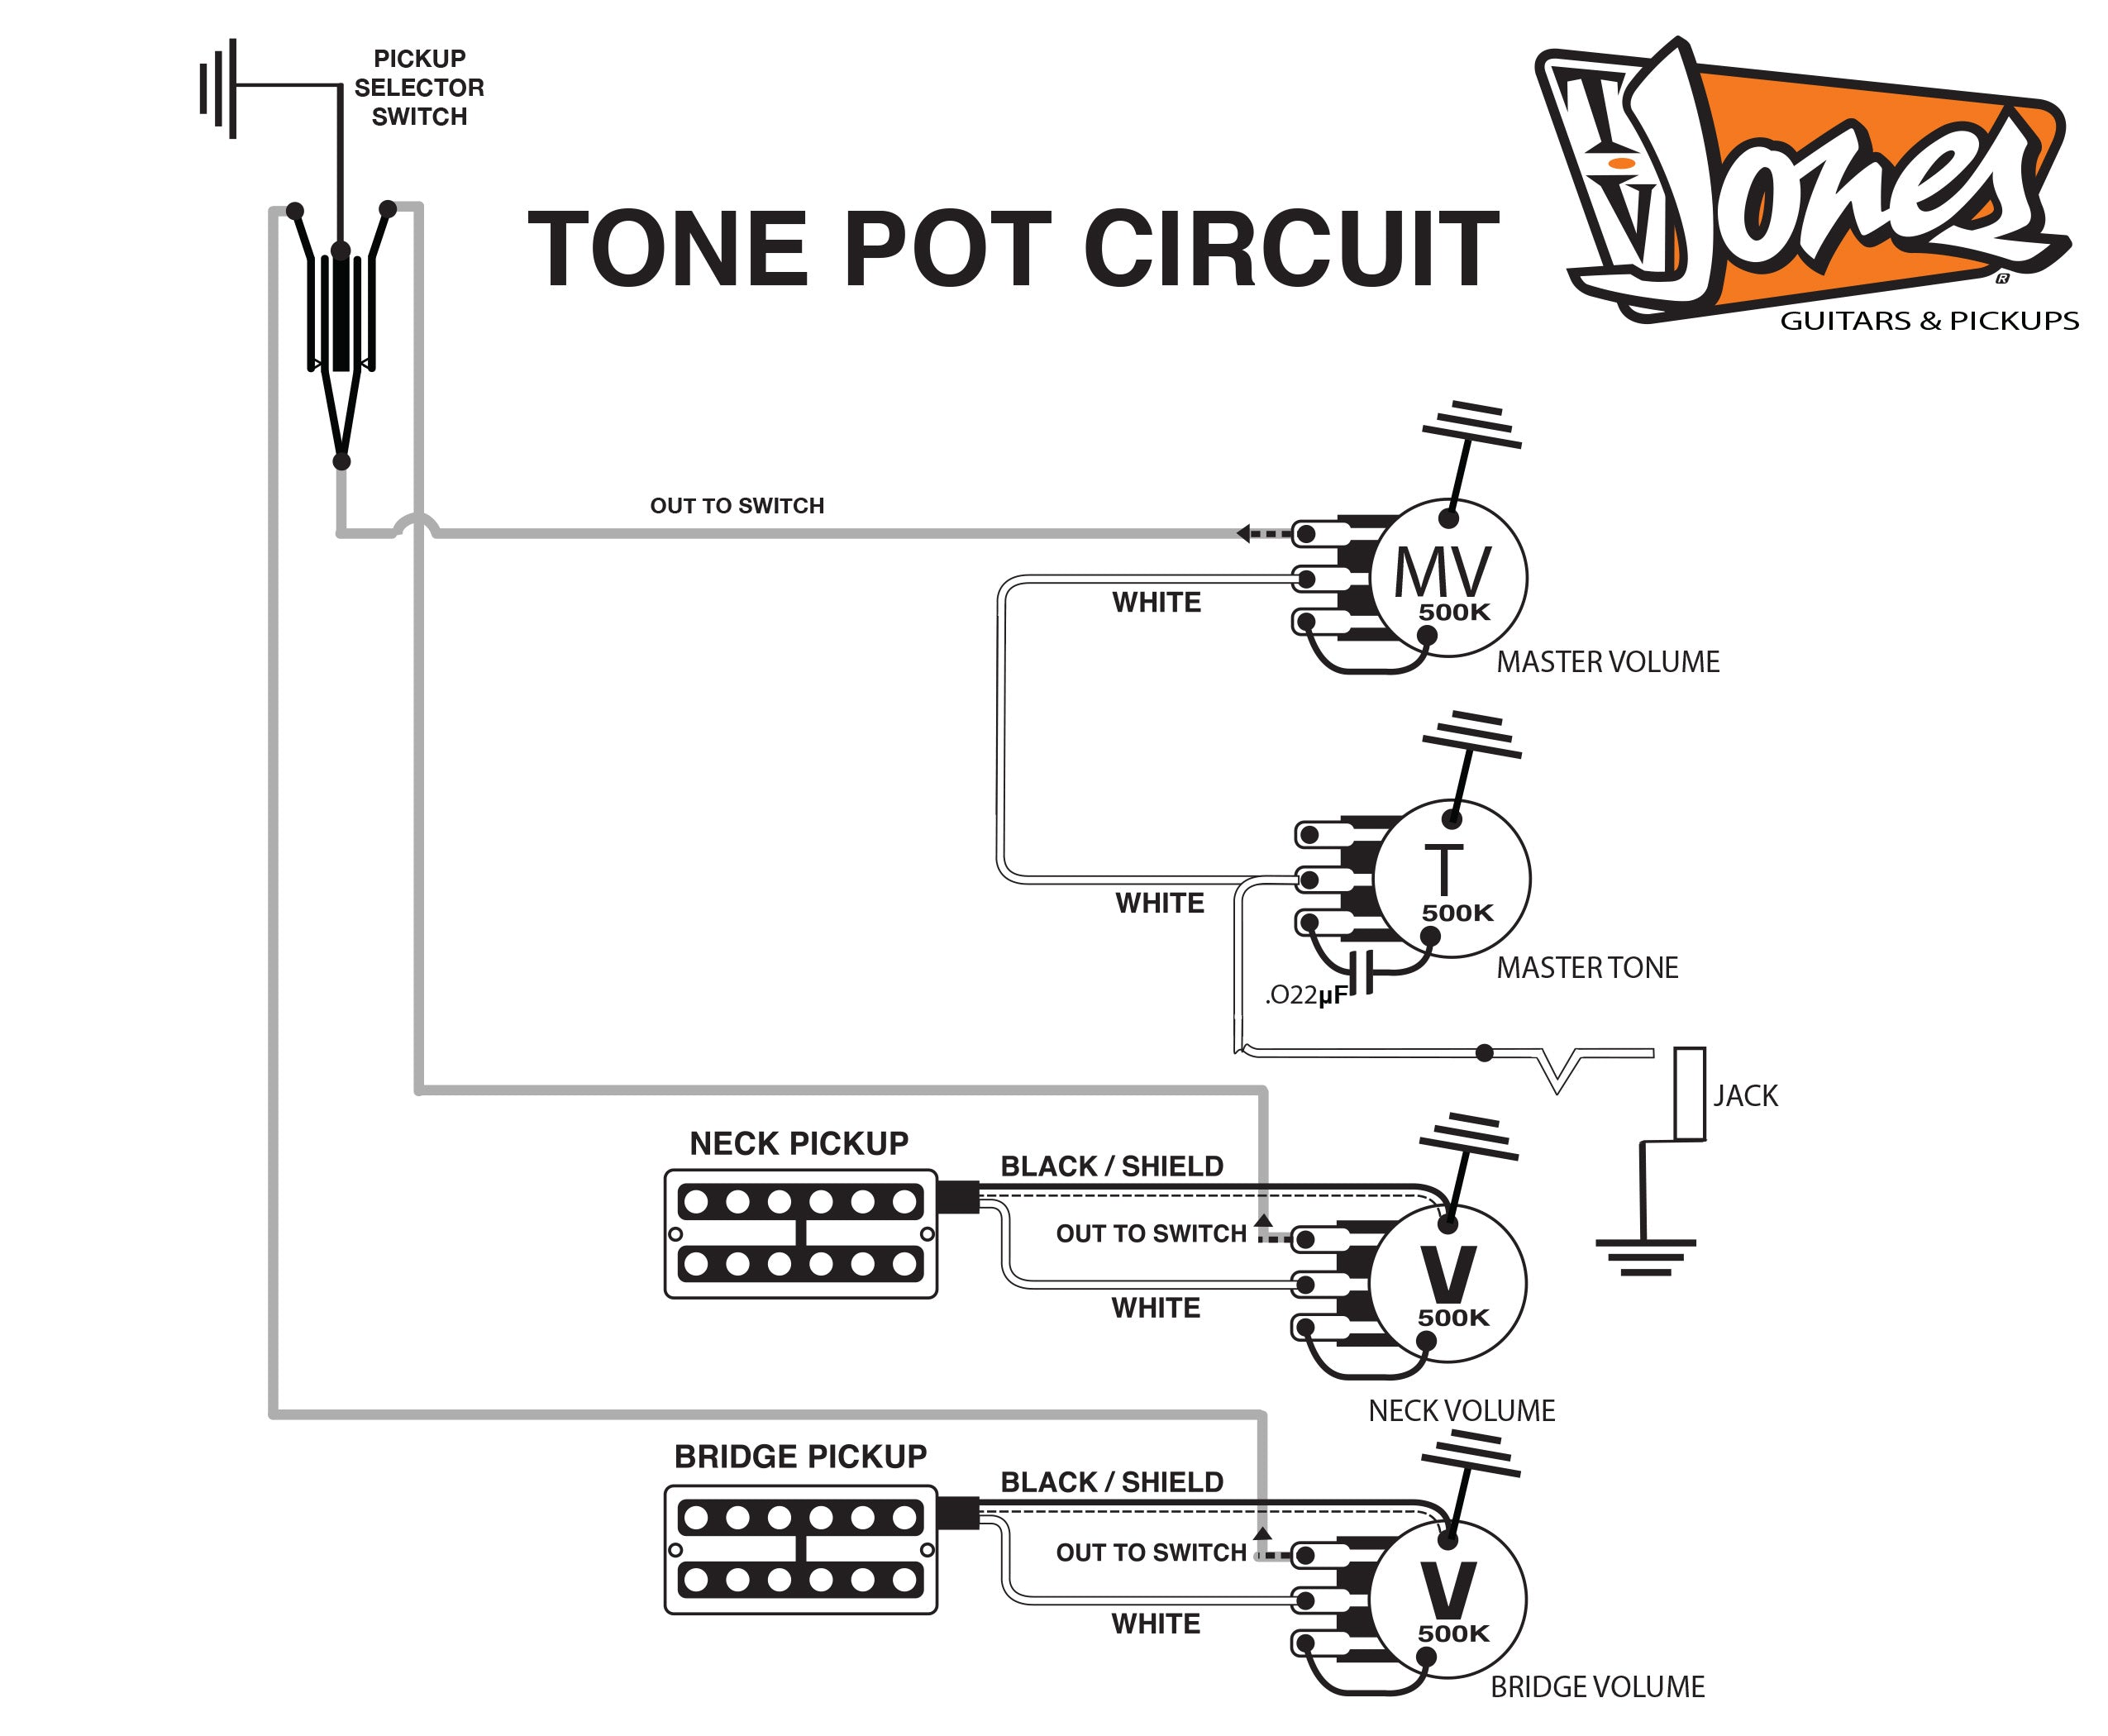 Gretsch Guitar Wiring Diagram - Wiring Diagram All Data on dean ml wiring diagram, gator wiring diagram, johnson wiring diagram, silvertone wiring diagram, fishman wiring diagram, korg wiring diagram, gibson wiring diagram, stratocaster wiring diagram, taylor wiring diagram, musicman wiring diagram, mosrite wiring diagram, jackson wiring diagram, hagstrom wiring diagram, duncan performer wiring diagram, manufacturing wiring diagram, kurzweil wiring diagram, hamer wiring diagram, harmony wiring diagram, michael kelly wiring diagram, dimarzio wiring diagram,